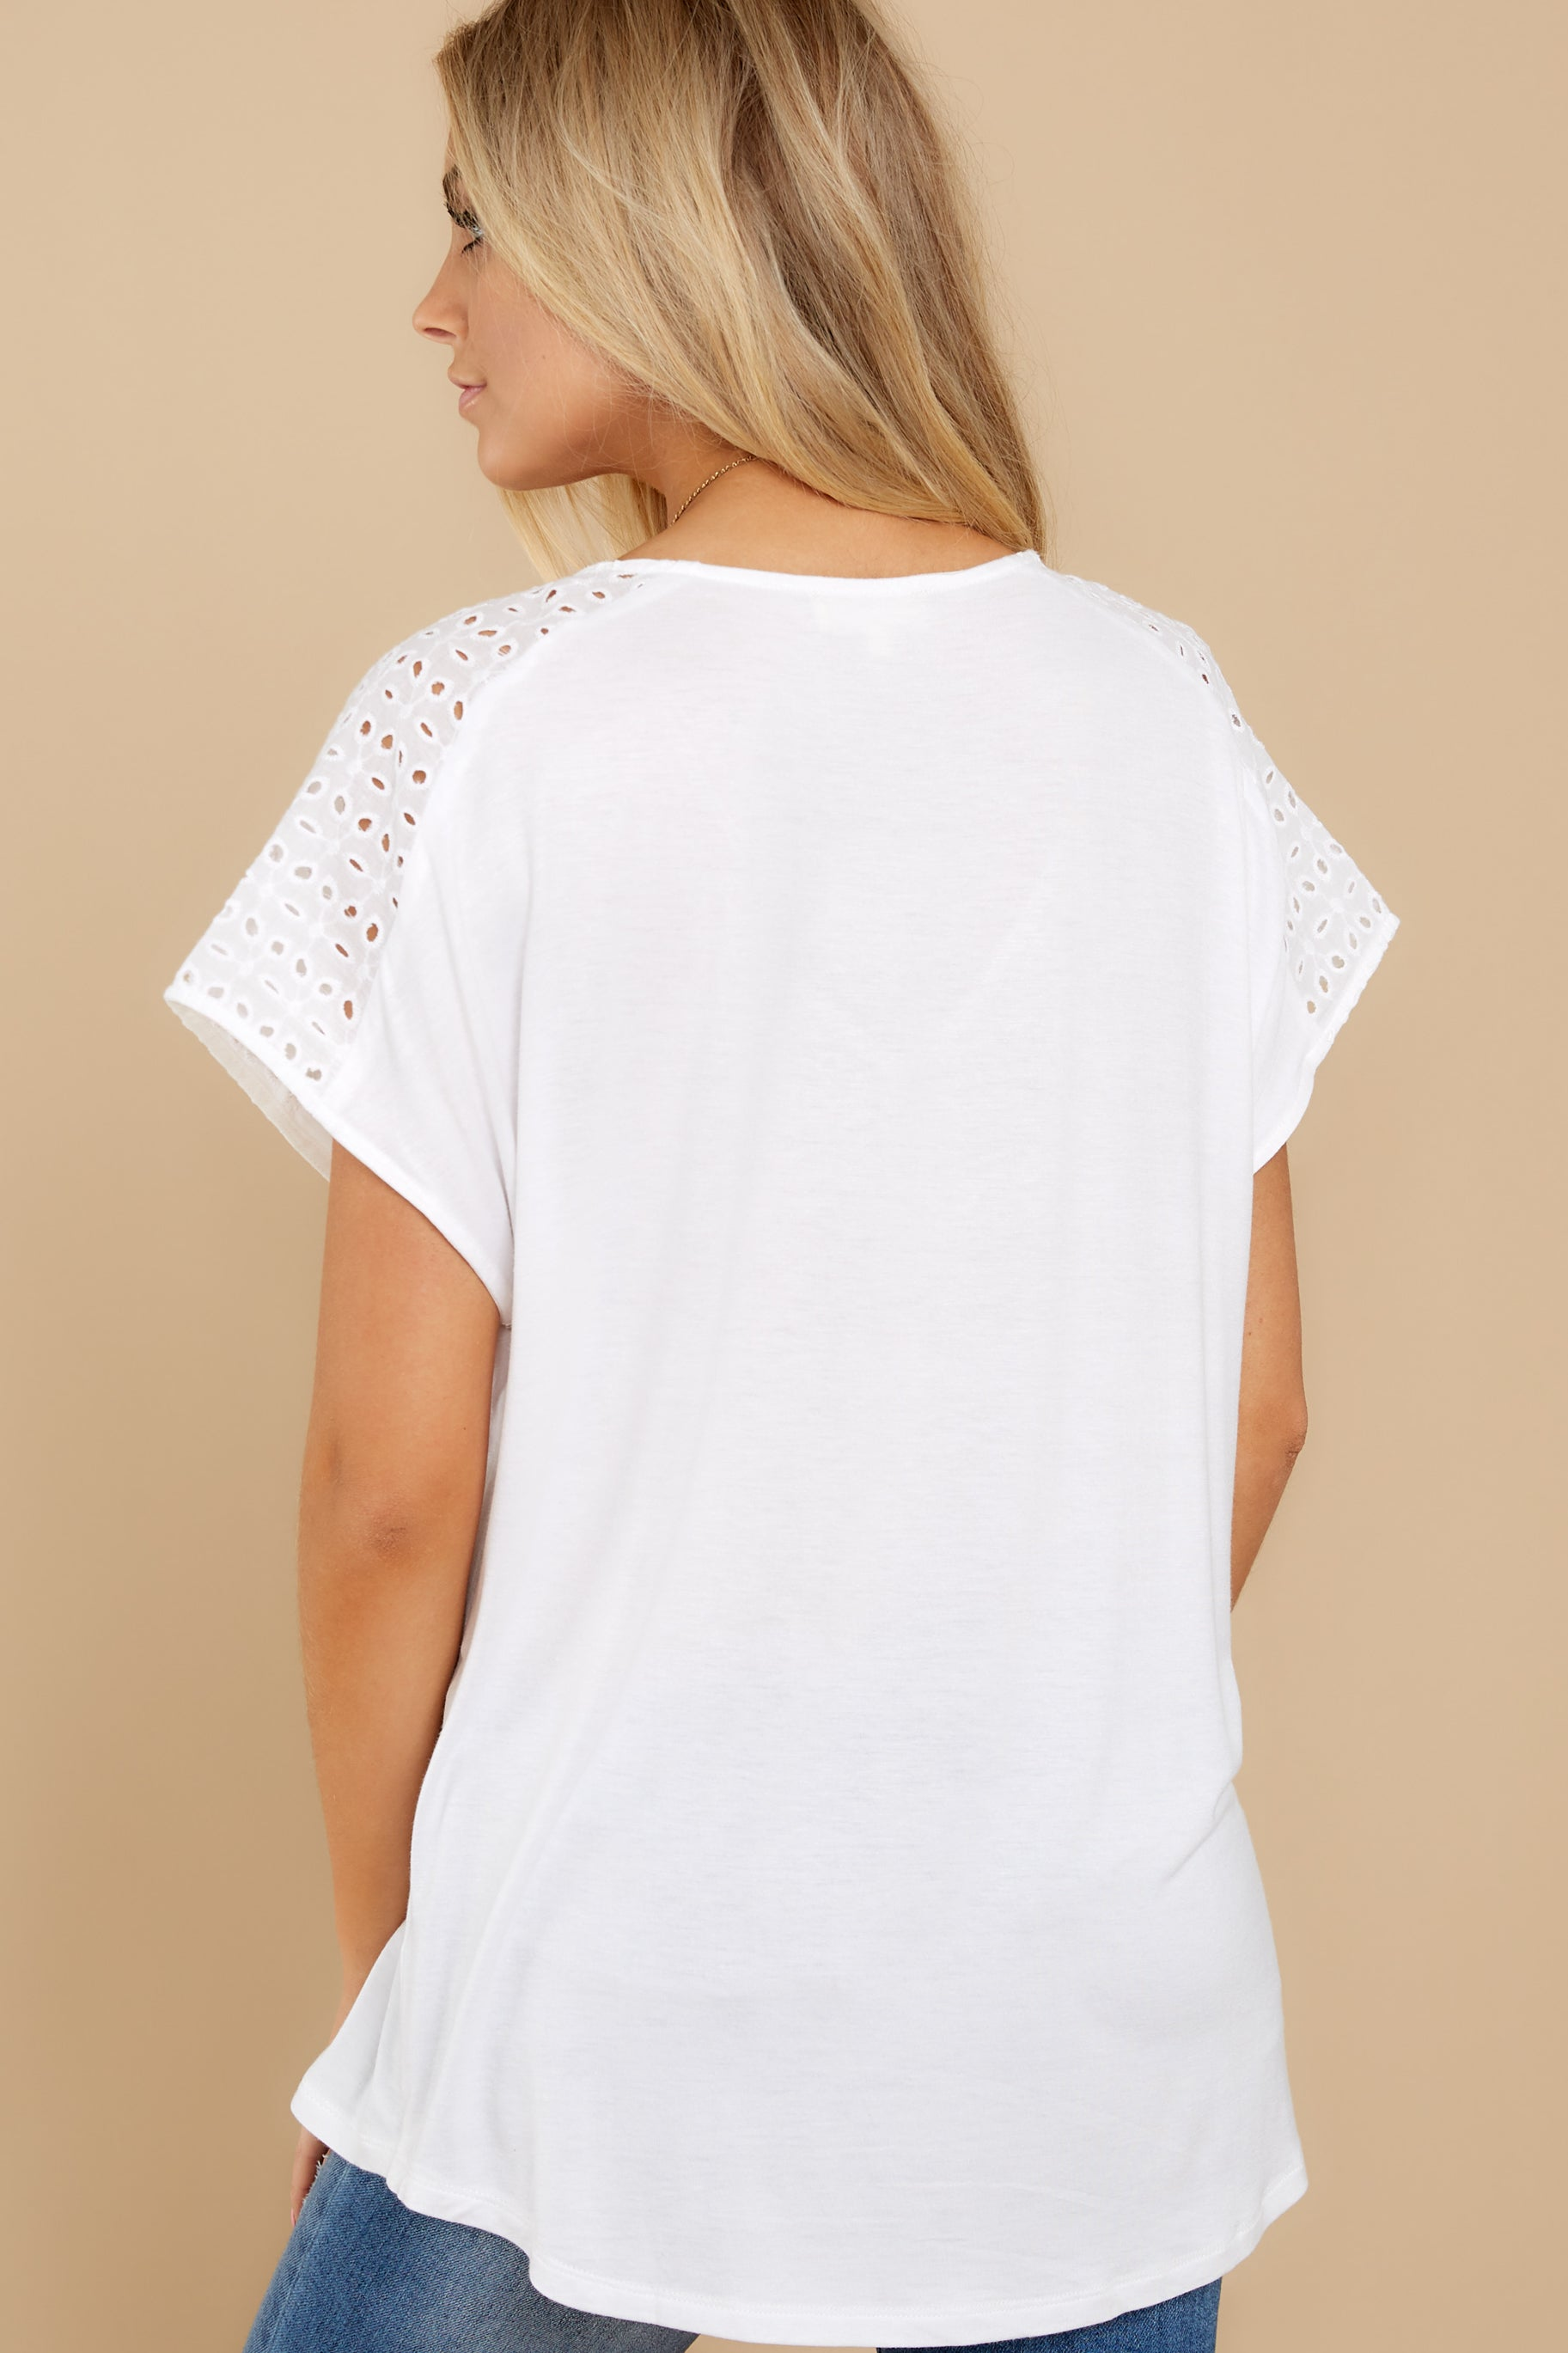 8 All My Time White Eyelet Top at reddress.com